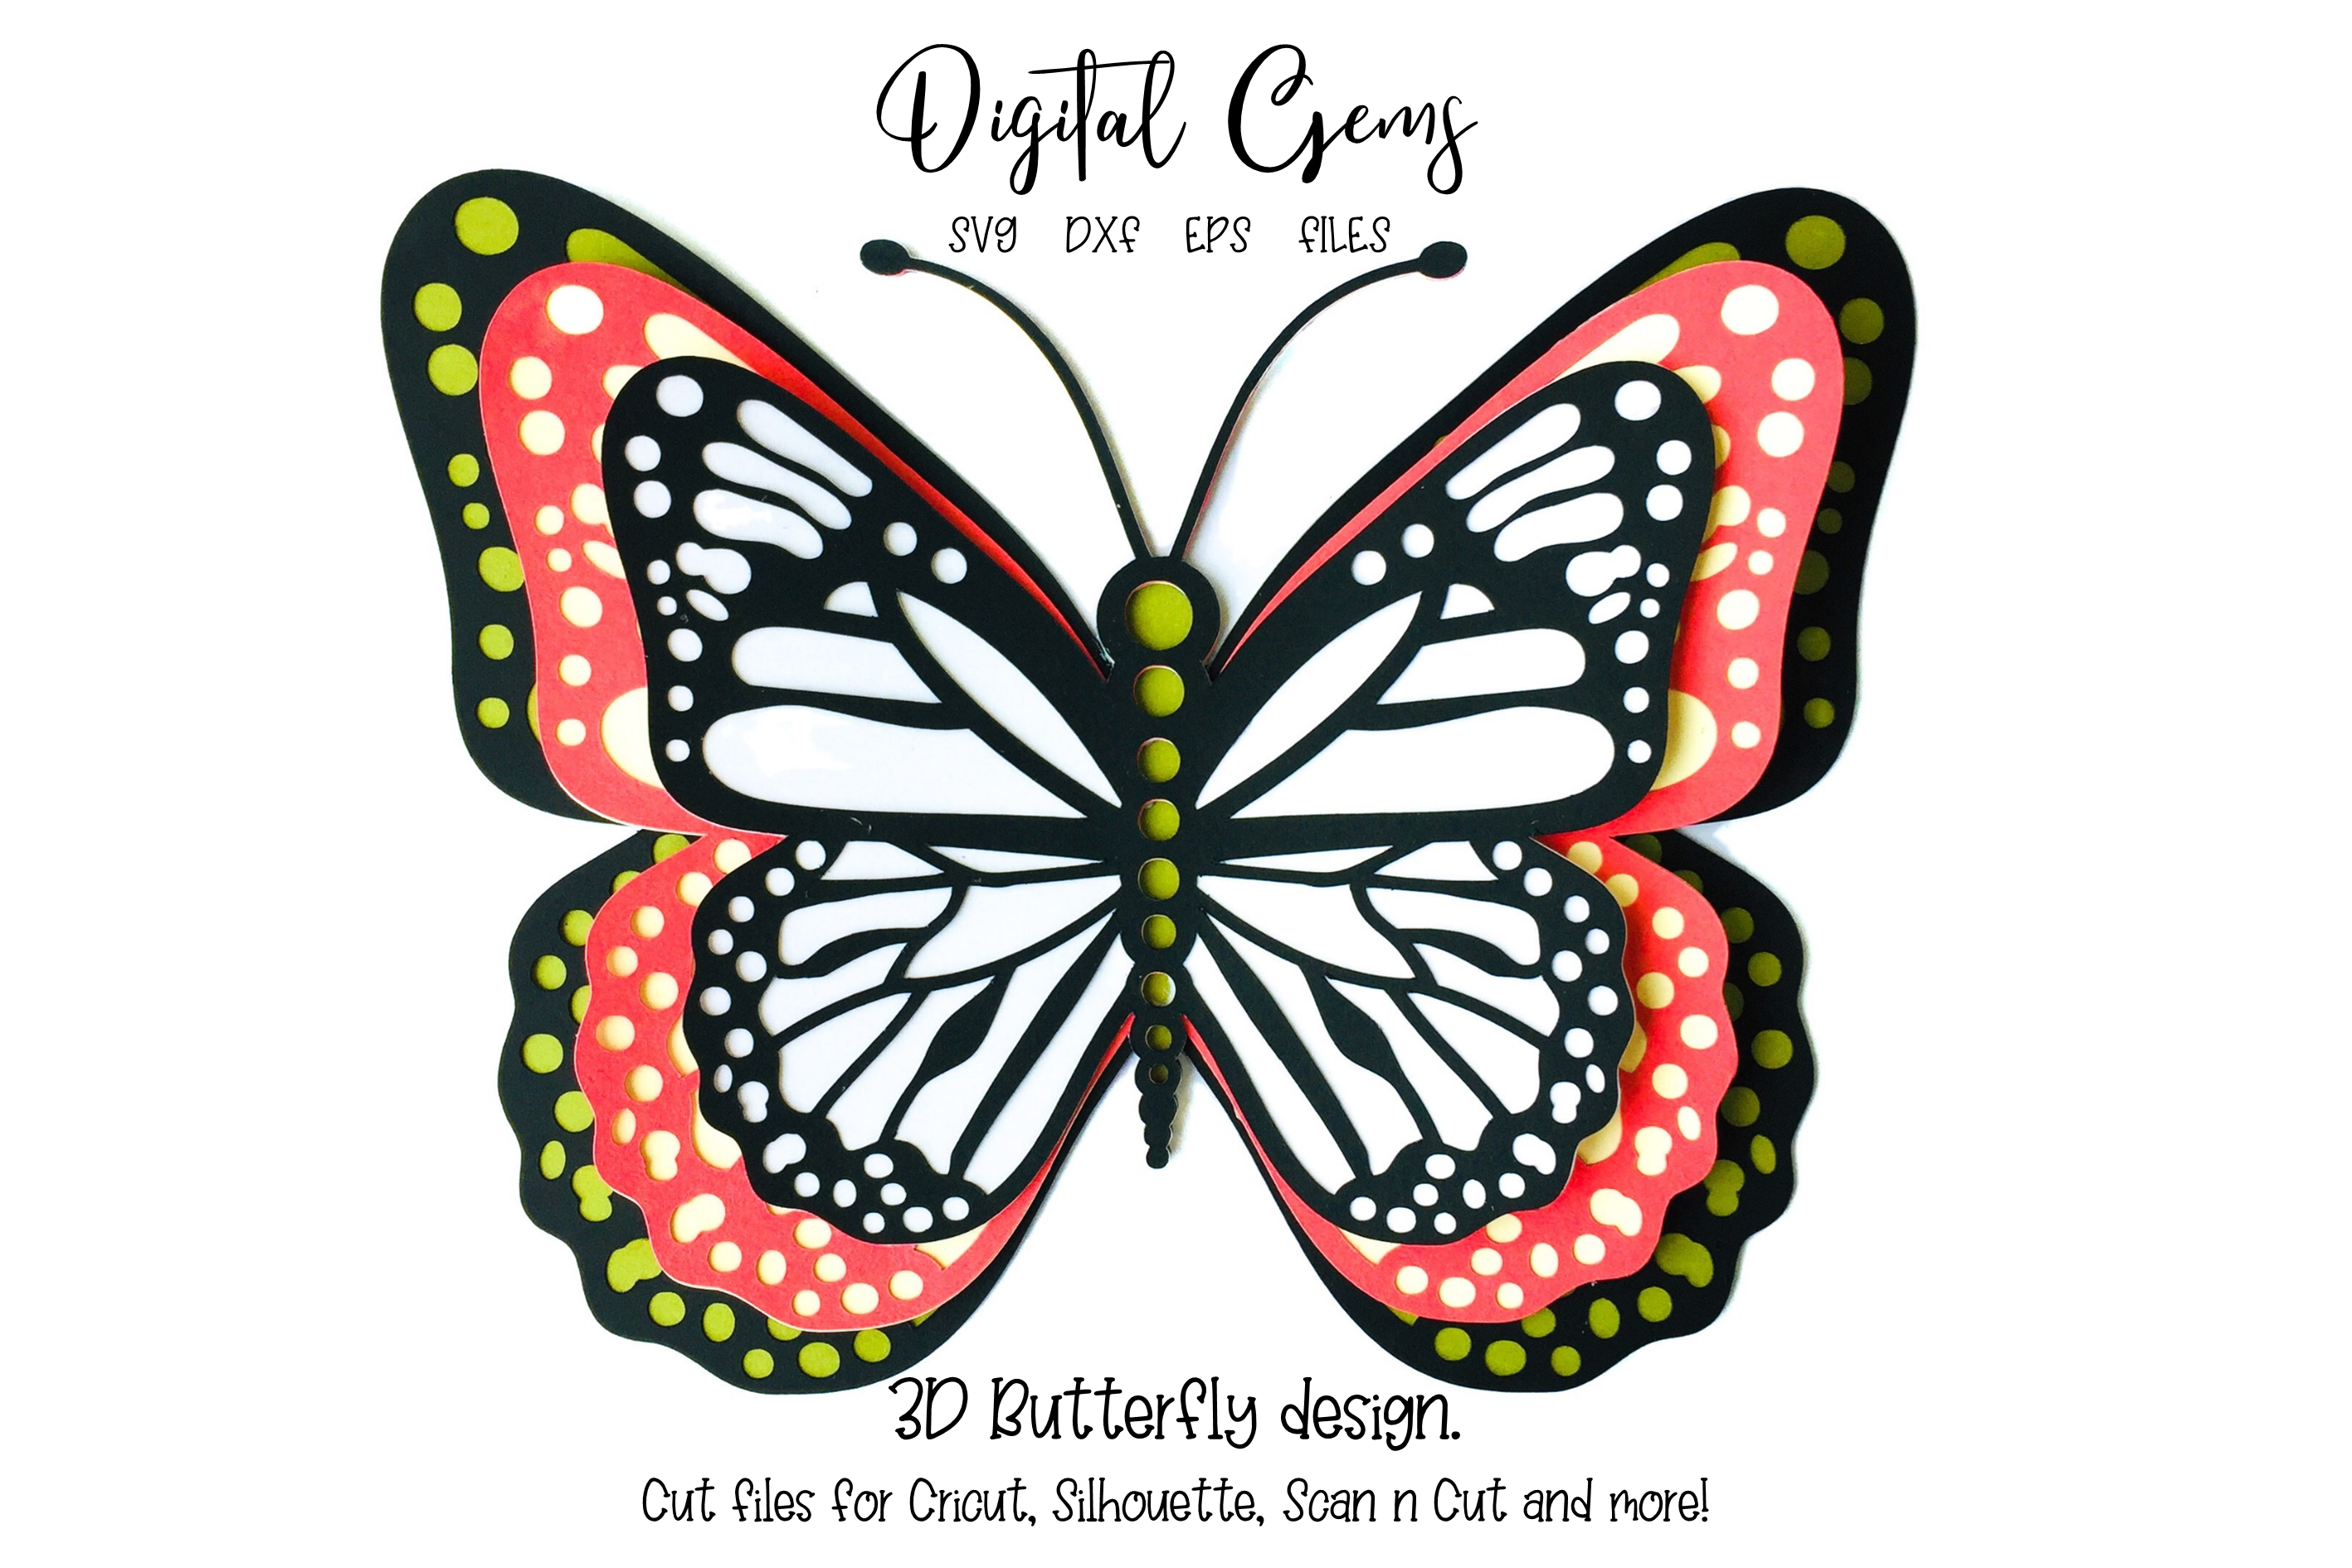 Download Free 3d Butterfly Design Graphic By Digital Gems Creative Fabrica for Cricut Explore, Silhouette and other cutting machines.